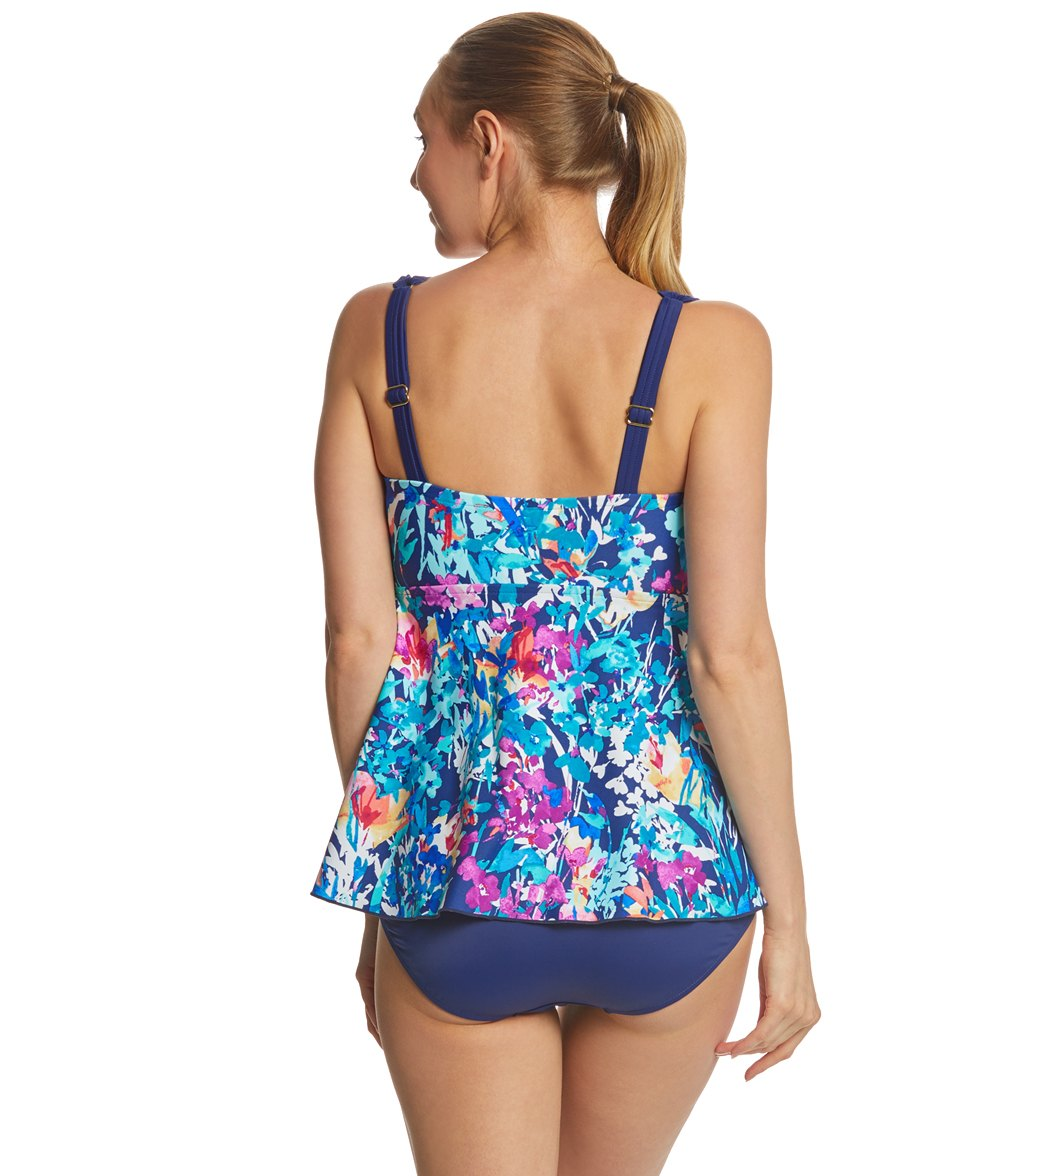 d8714dd1ea0 Maxine French Bouquet Draped One Piece Swimsuit at SwimOutlet.com ...